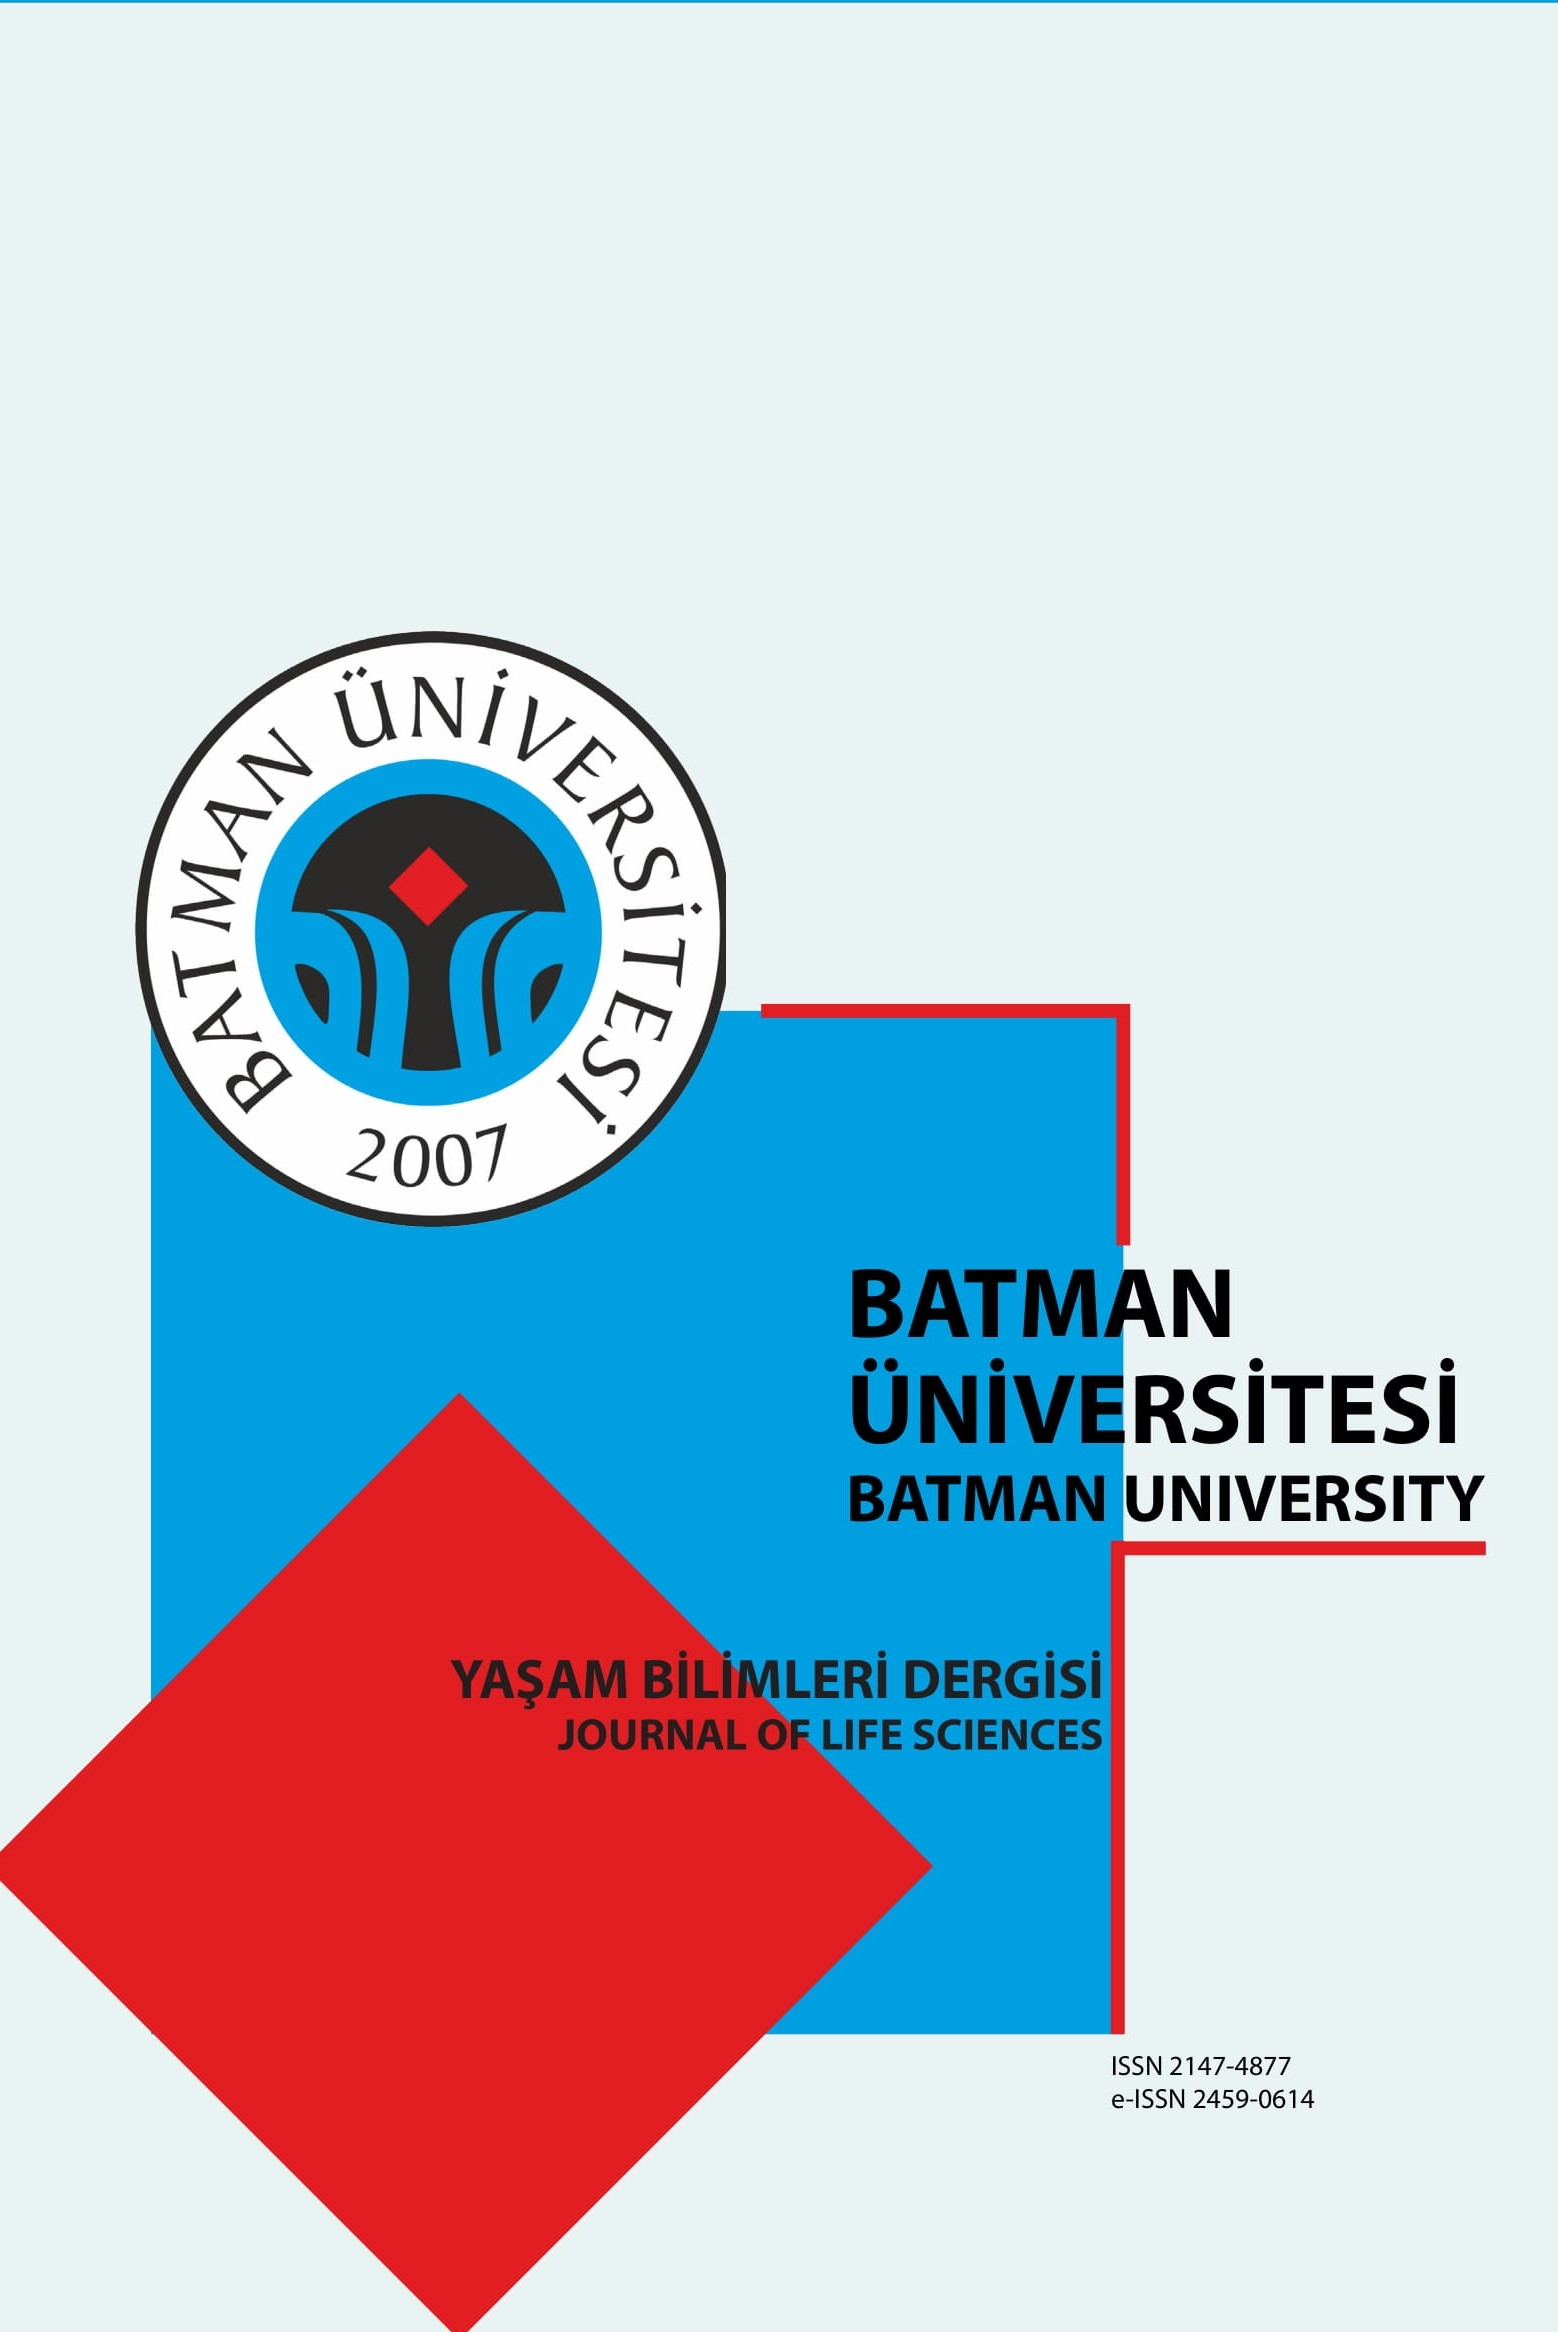 Batman University Journal of Life Sciences